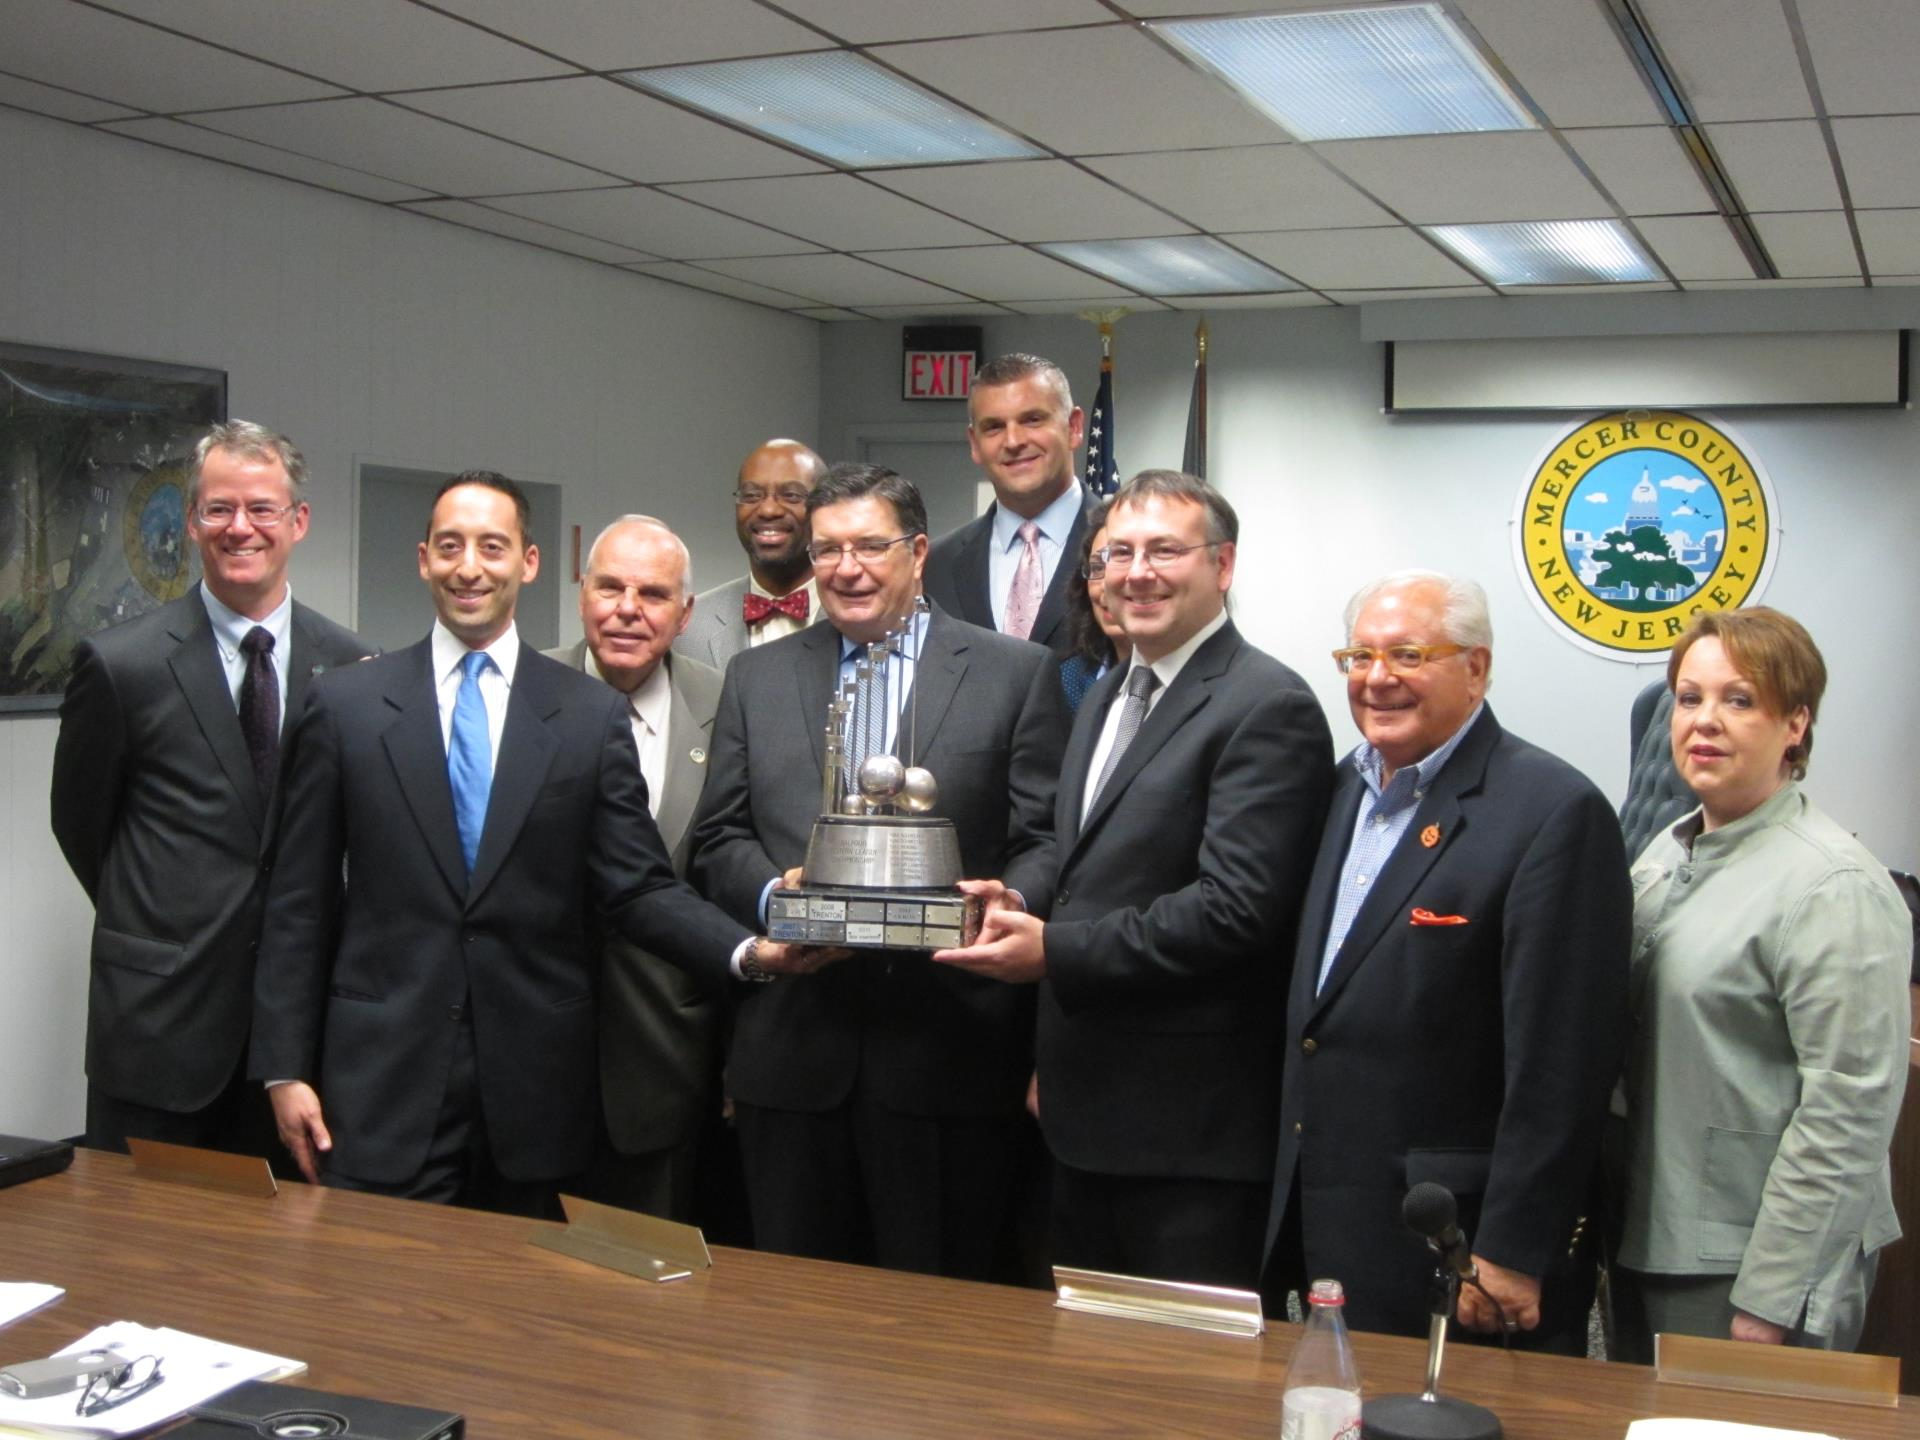 Trenton Thunder honored by Hughes, Freeholders